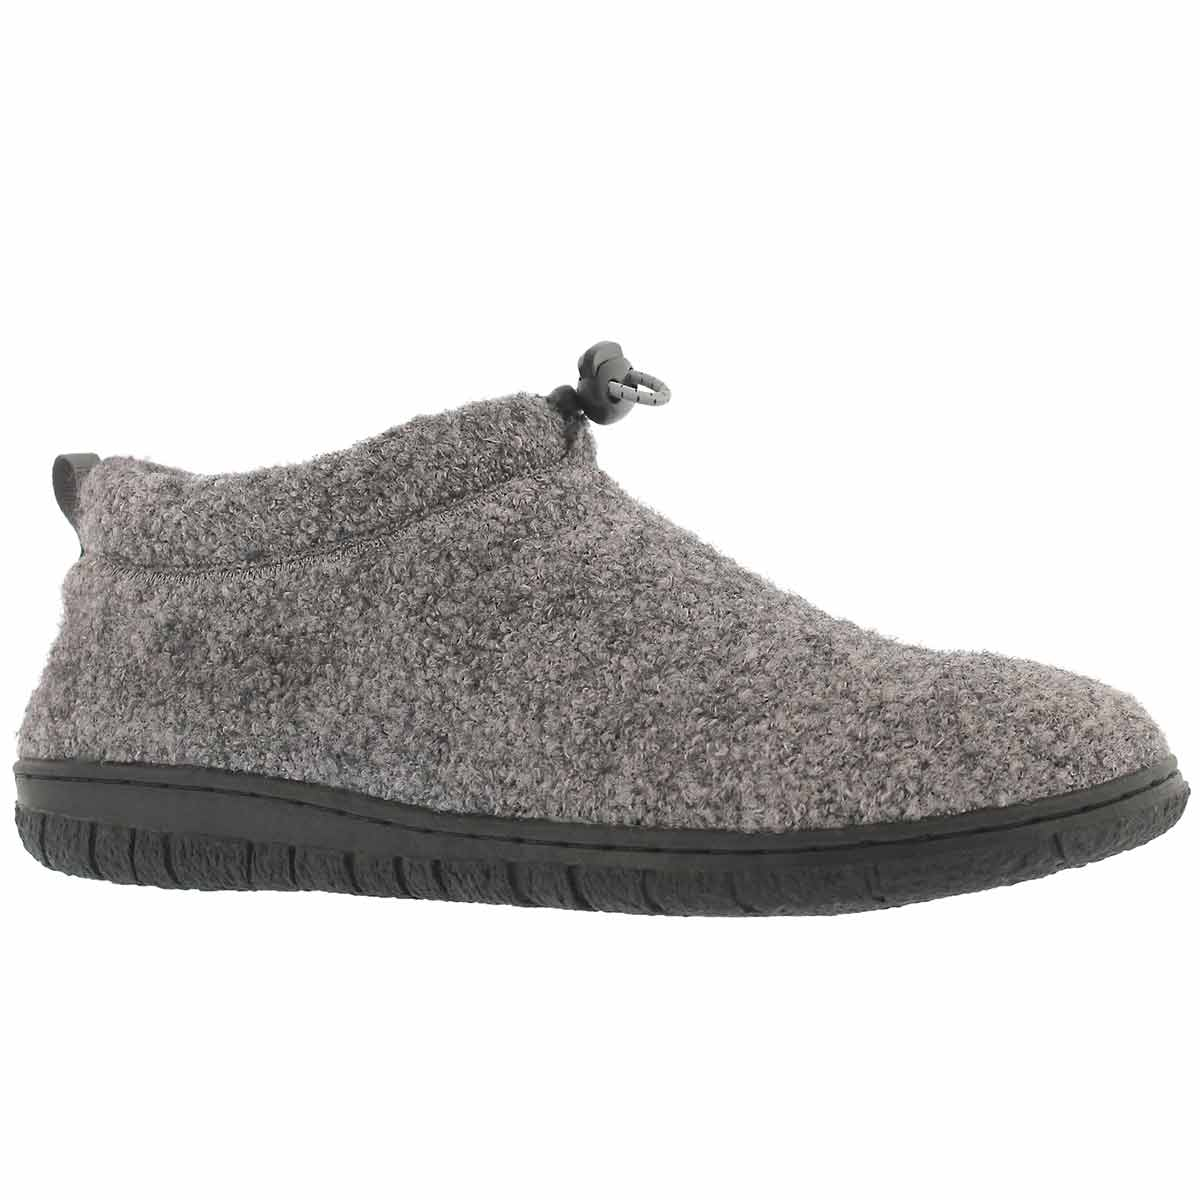 Women's NANCY grey memory foam slippers